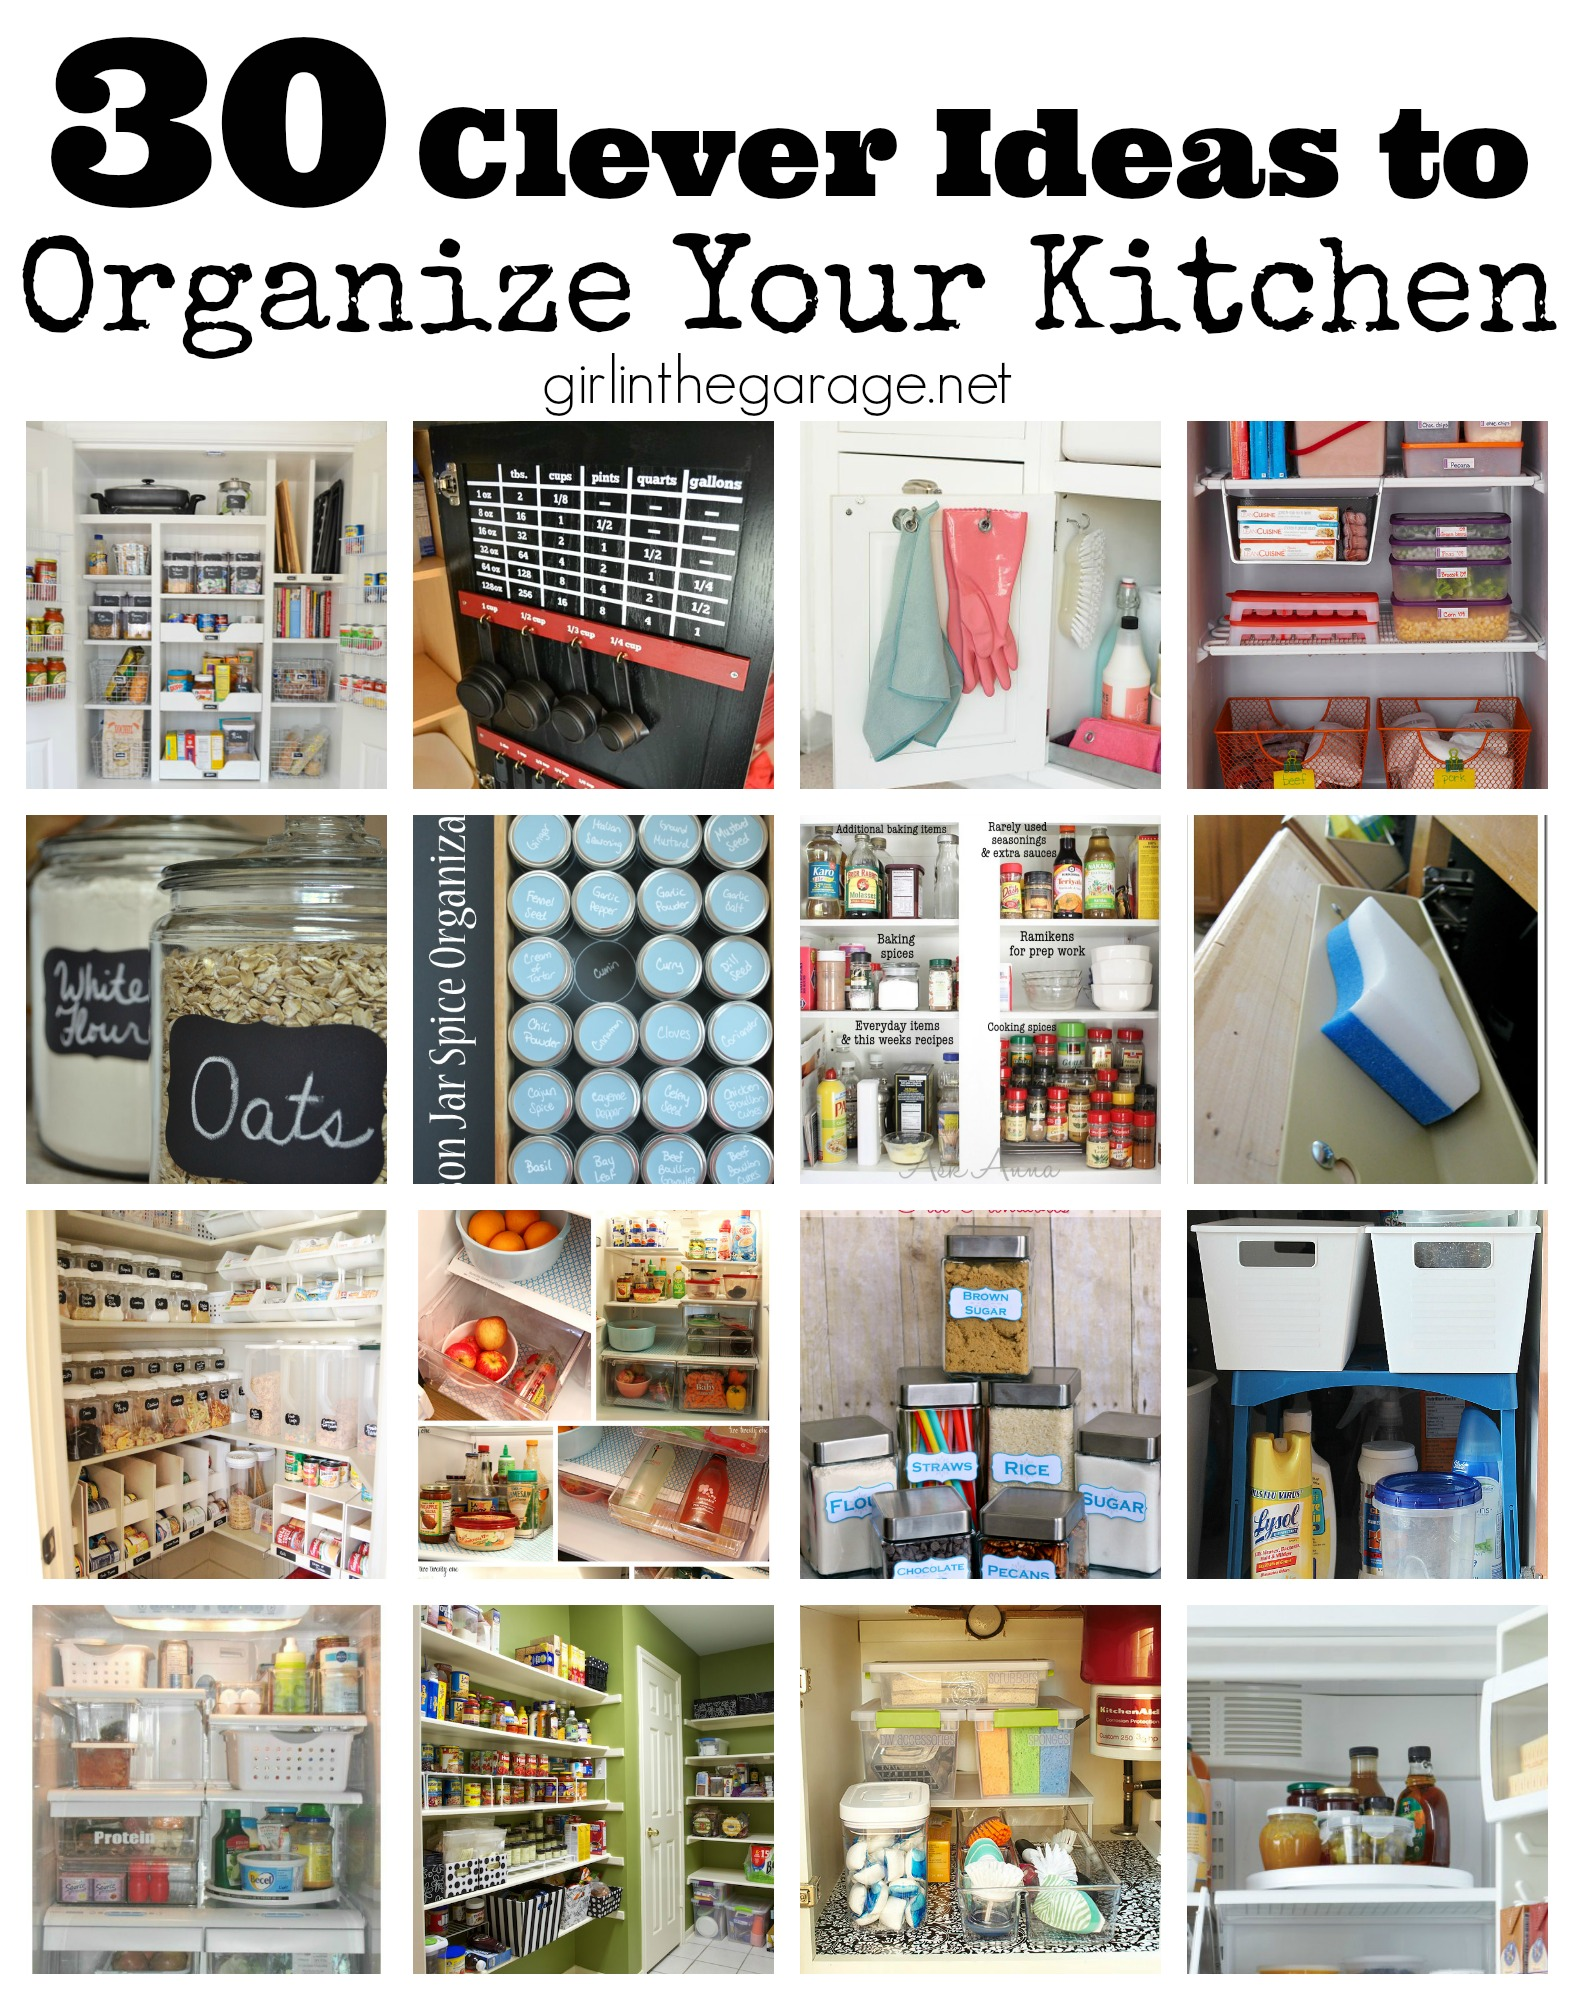 Organize Kitchen 30 Clever Ideas To Organize Your Kitchen Girl In The Garage